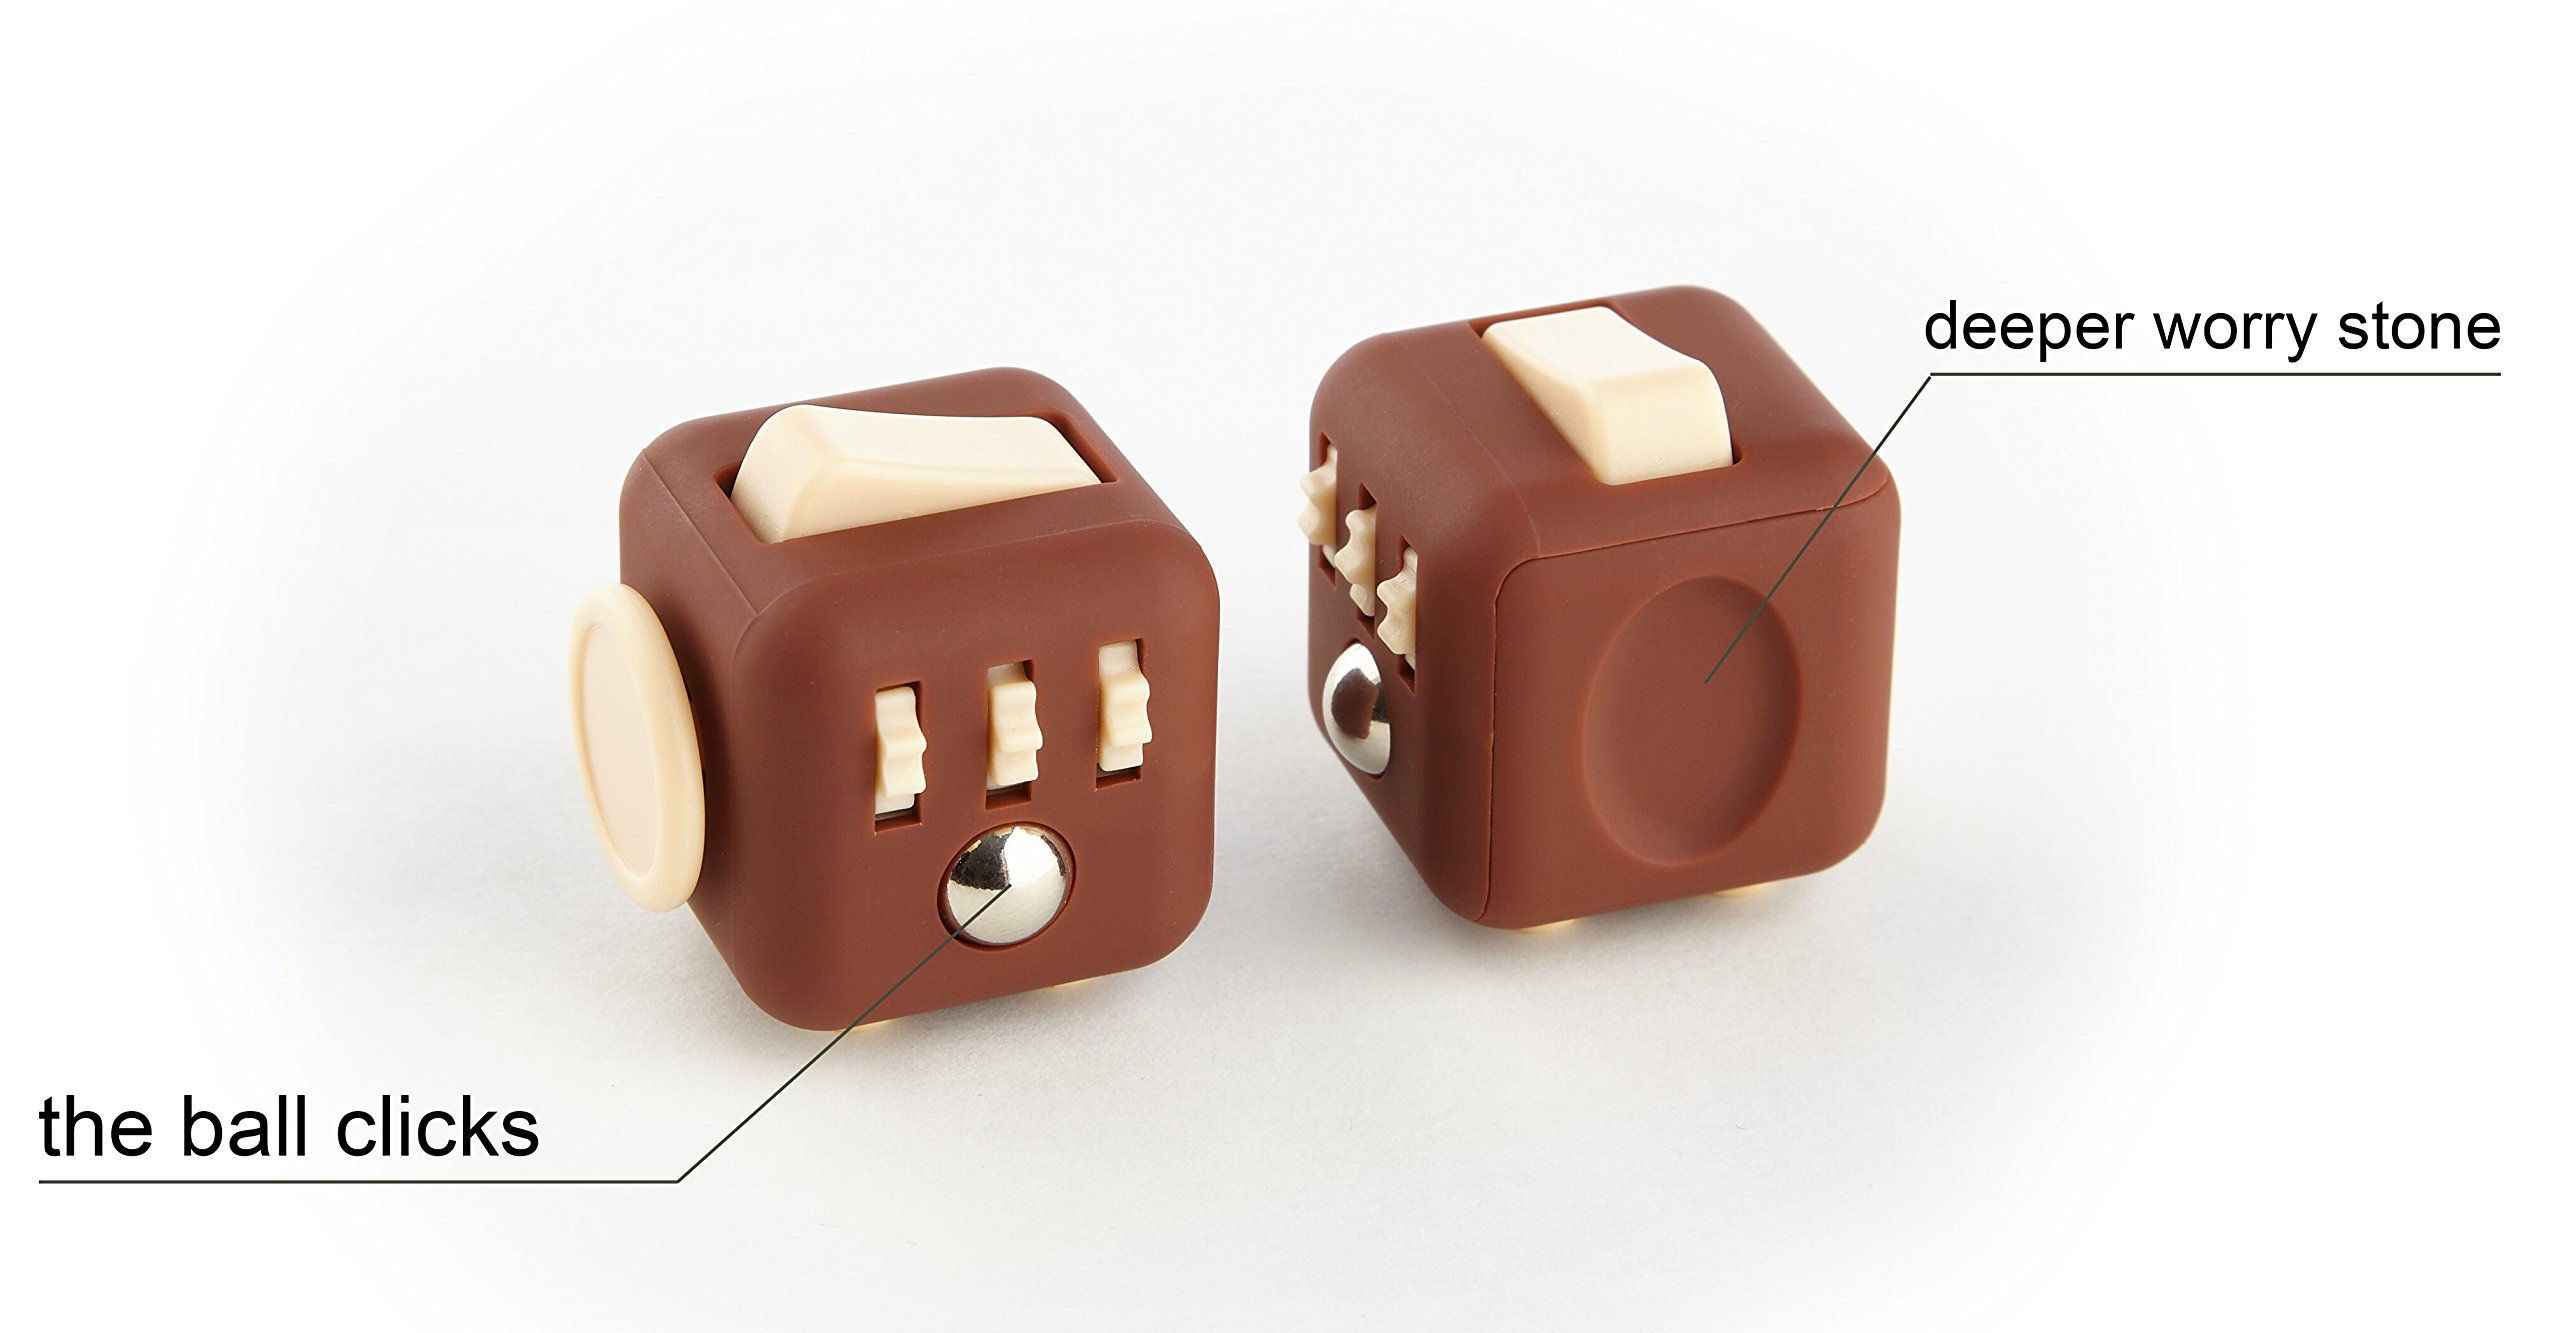 Moral Illusion Joy Cube - Chocolate Fidget Cube For Stress And Anxiety Relief ADHD, ADD, OCD - Silent Focus Dice With Extra Durable Silicone For Children And Adults - Quality Inspected Product